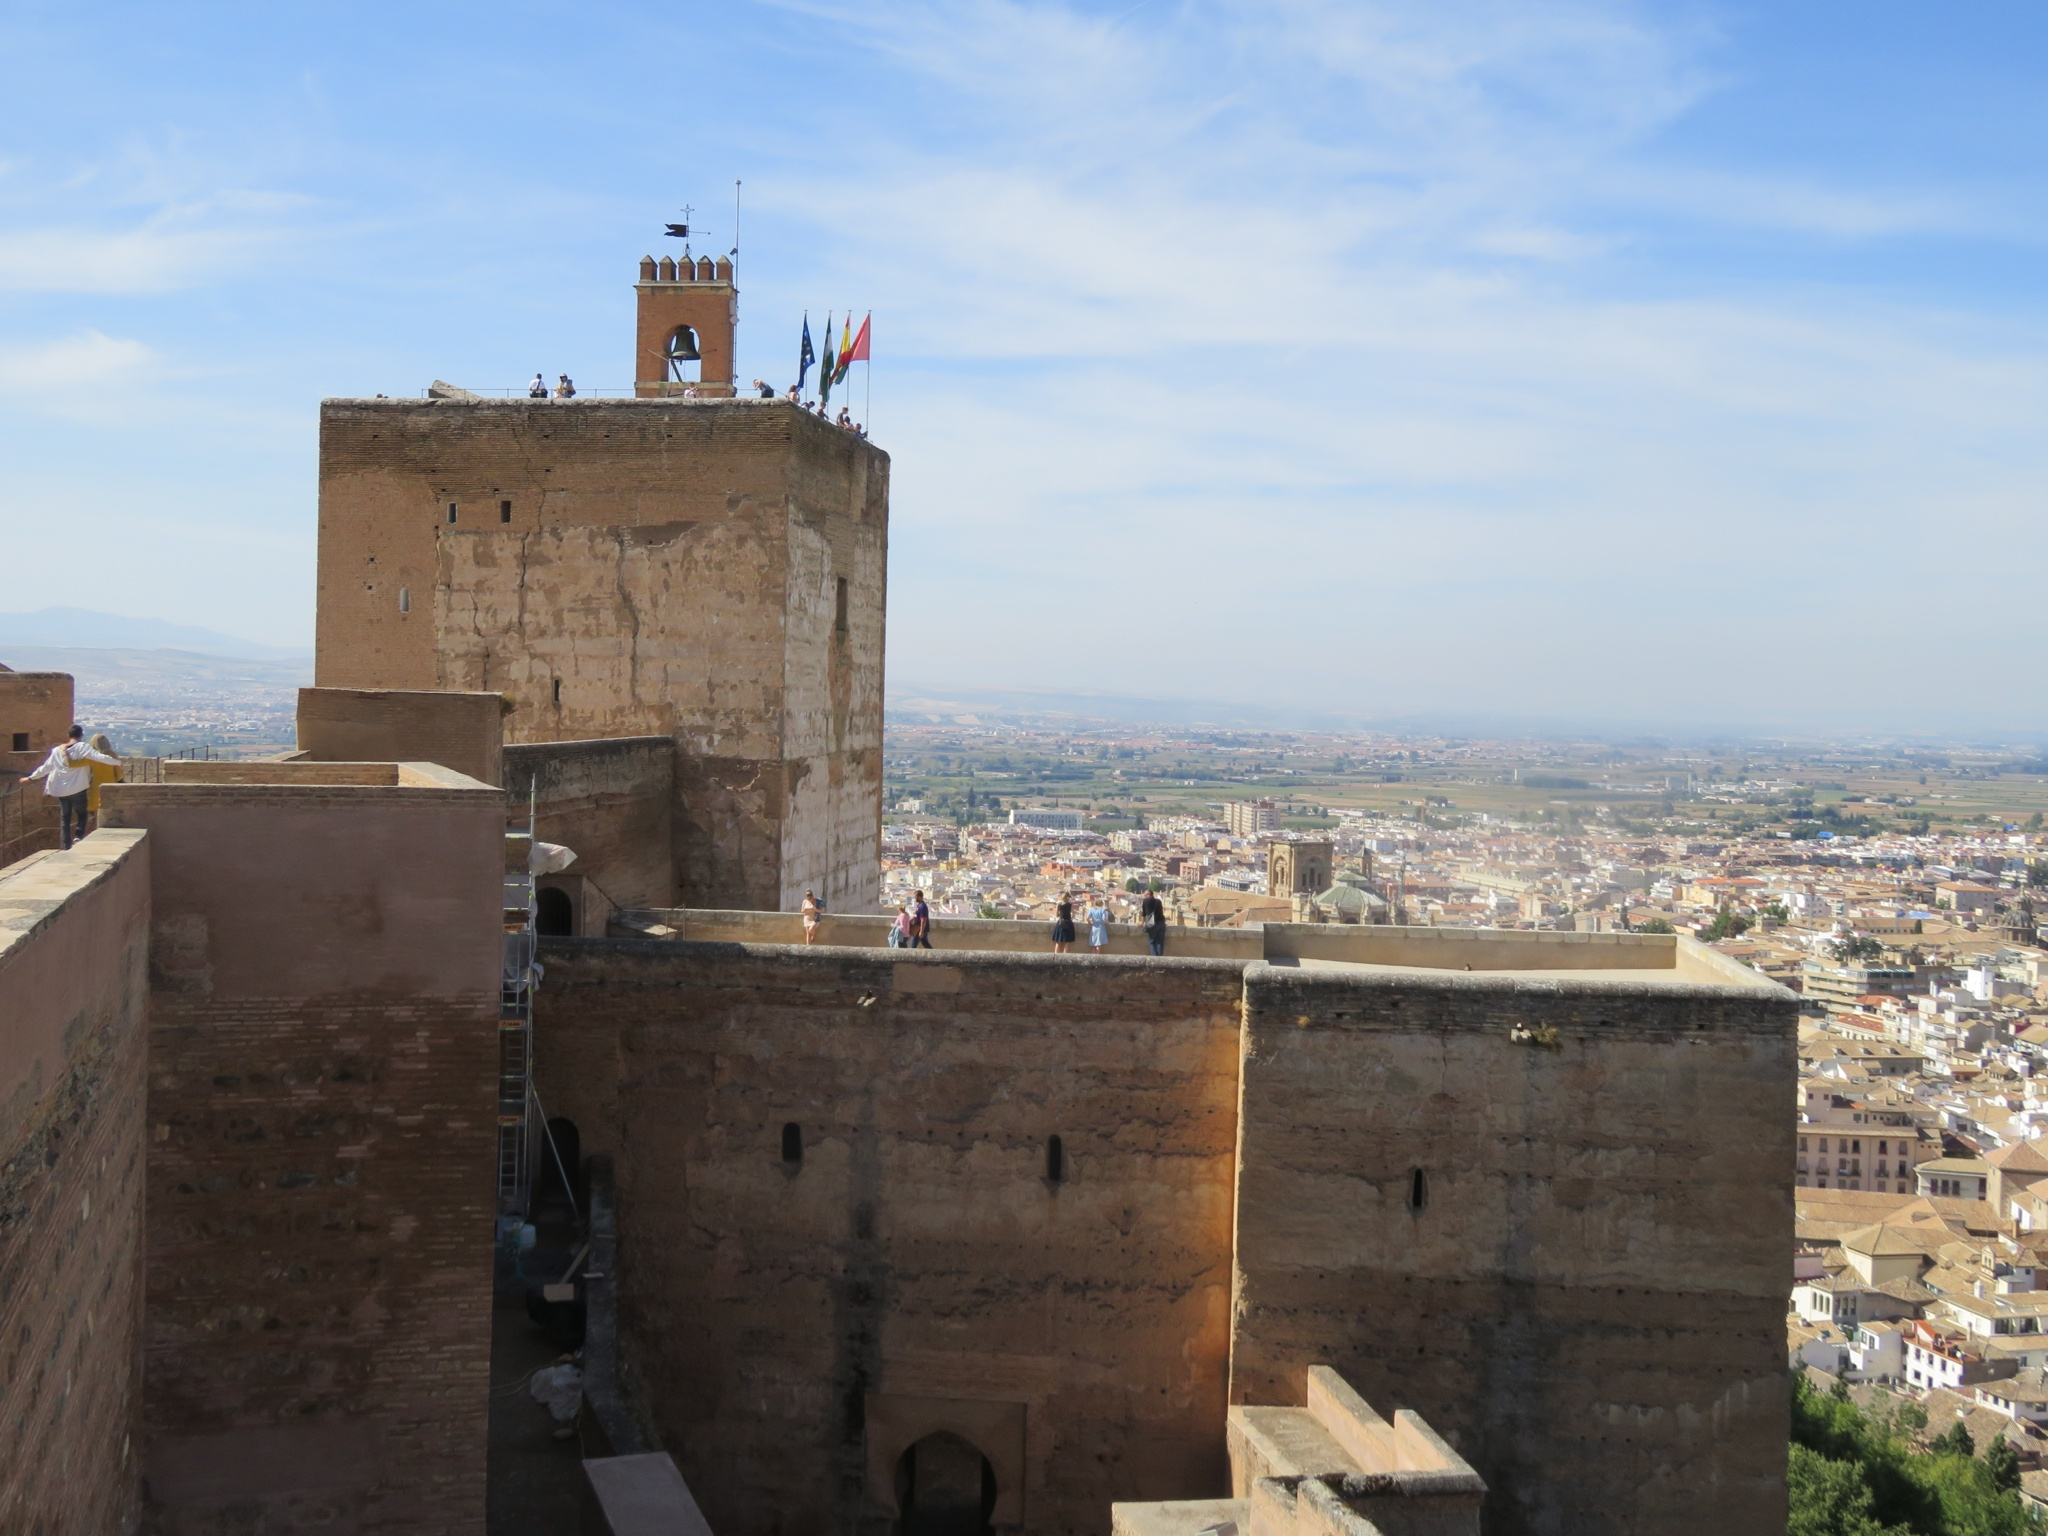 The Alcazaba, dates from the 13th century - tower used to defend the 2000 citizens that lived within its walls